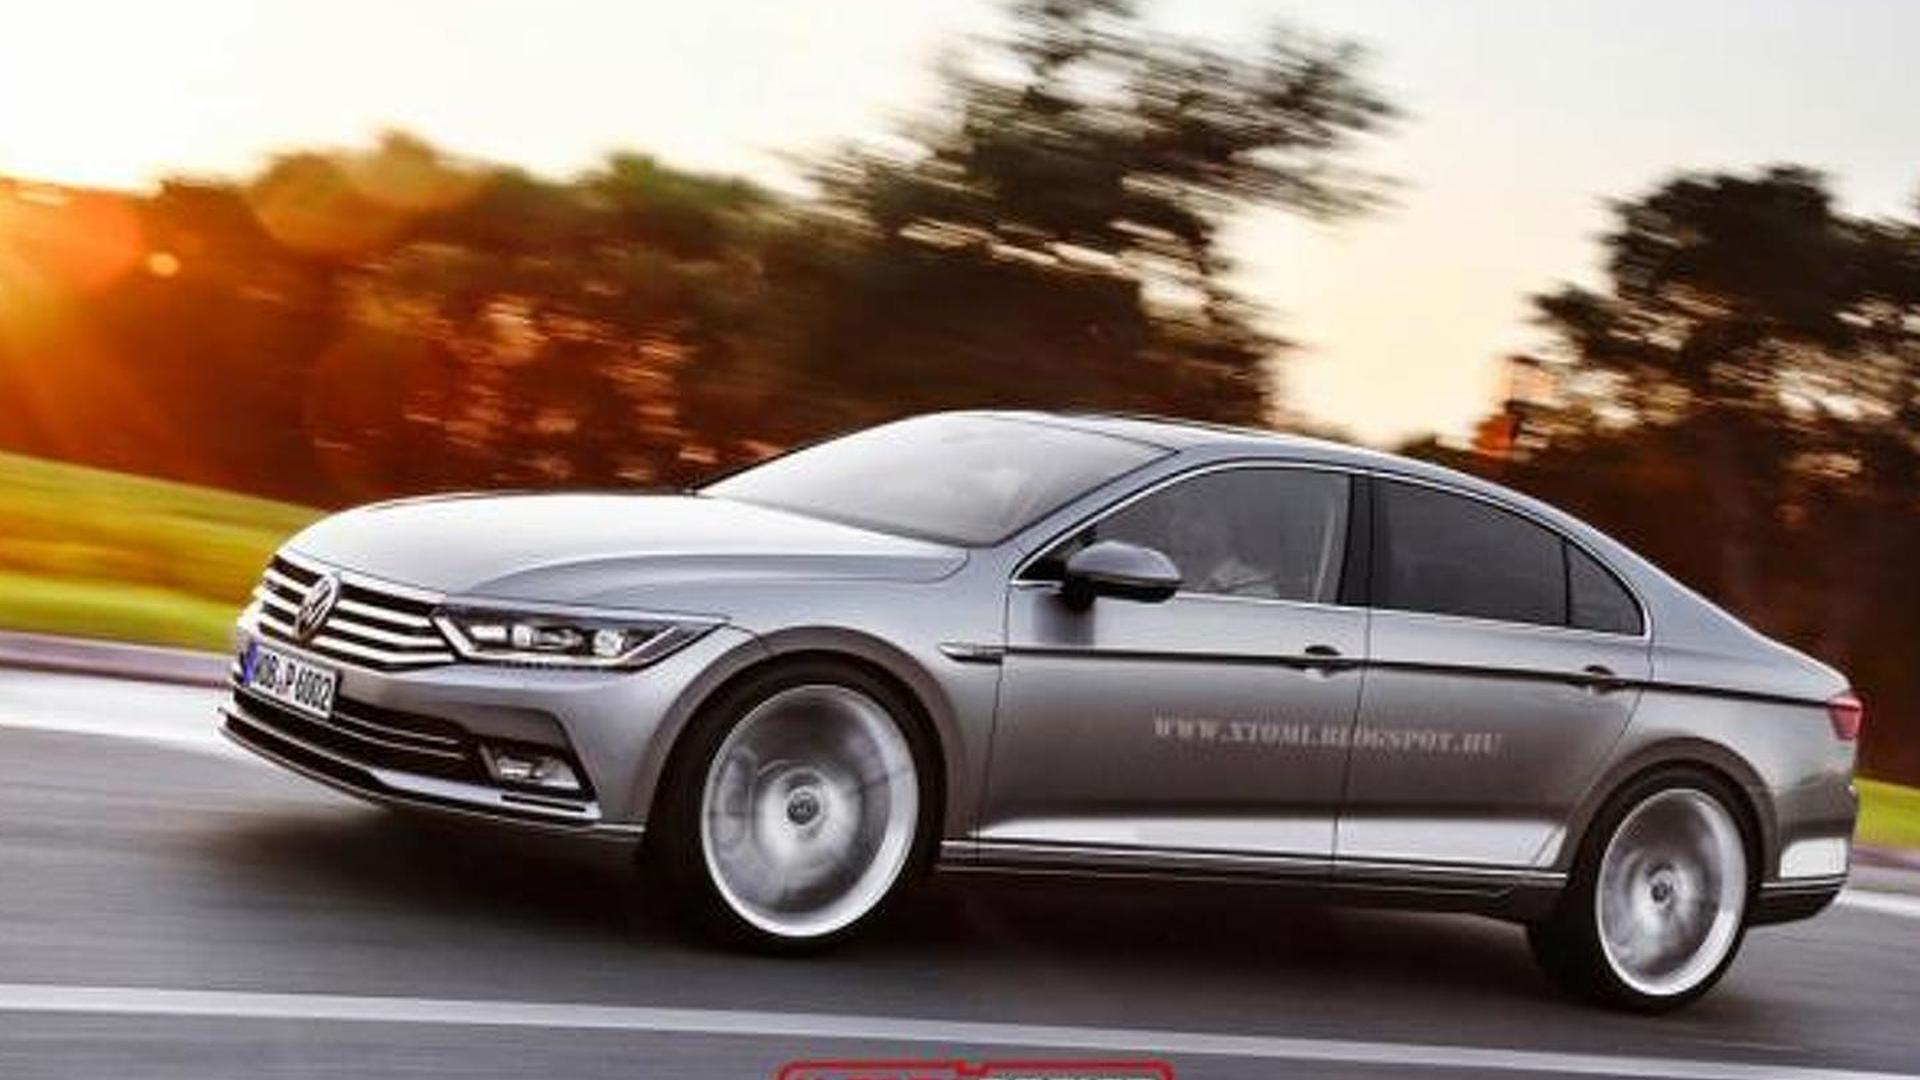 55 The Best Next Generation Vw Cc Concept and Review